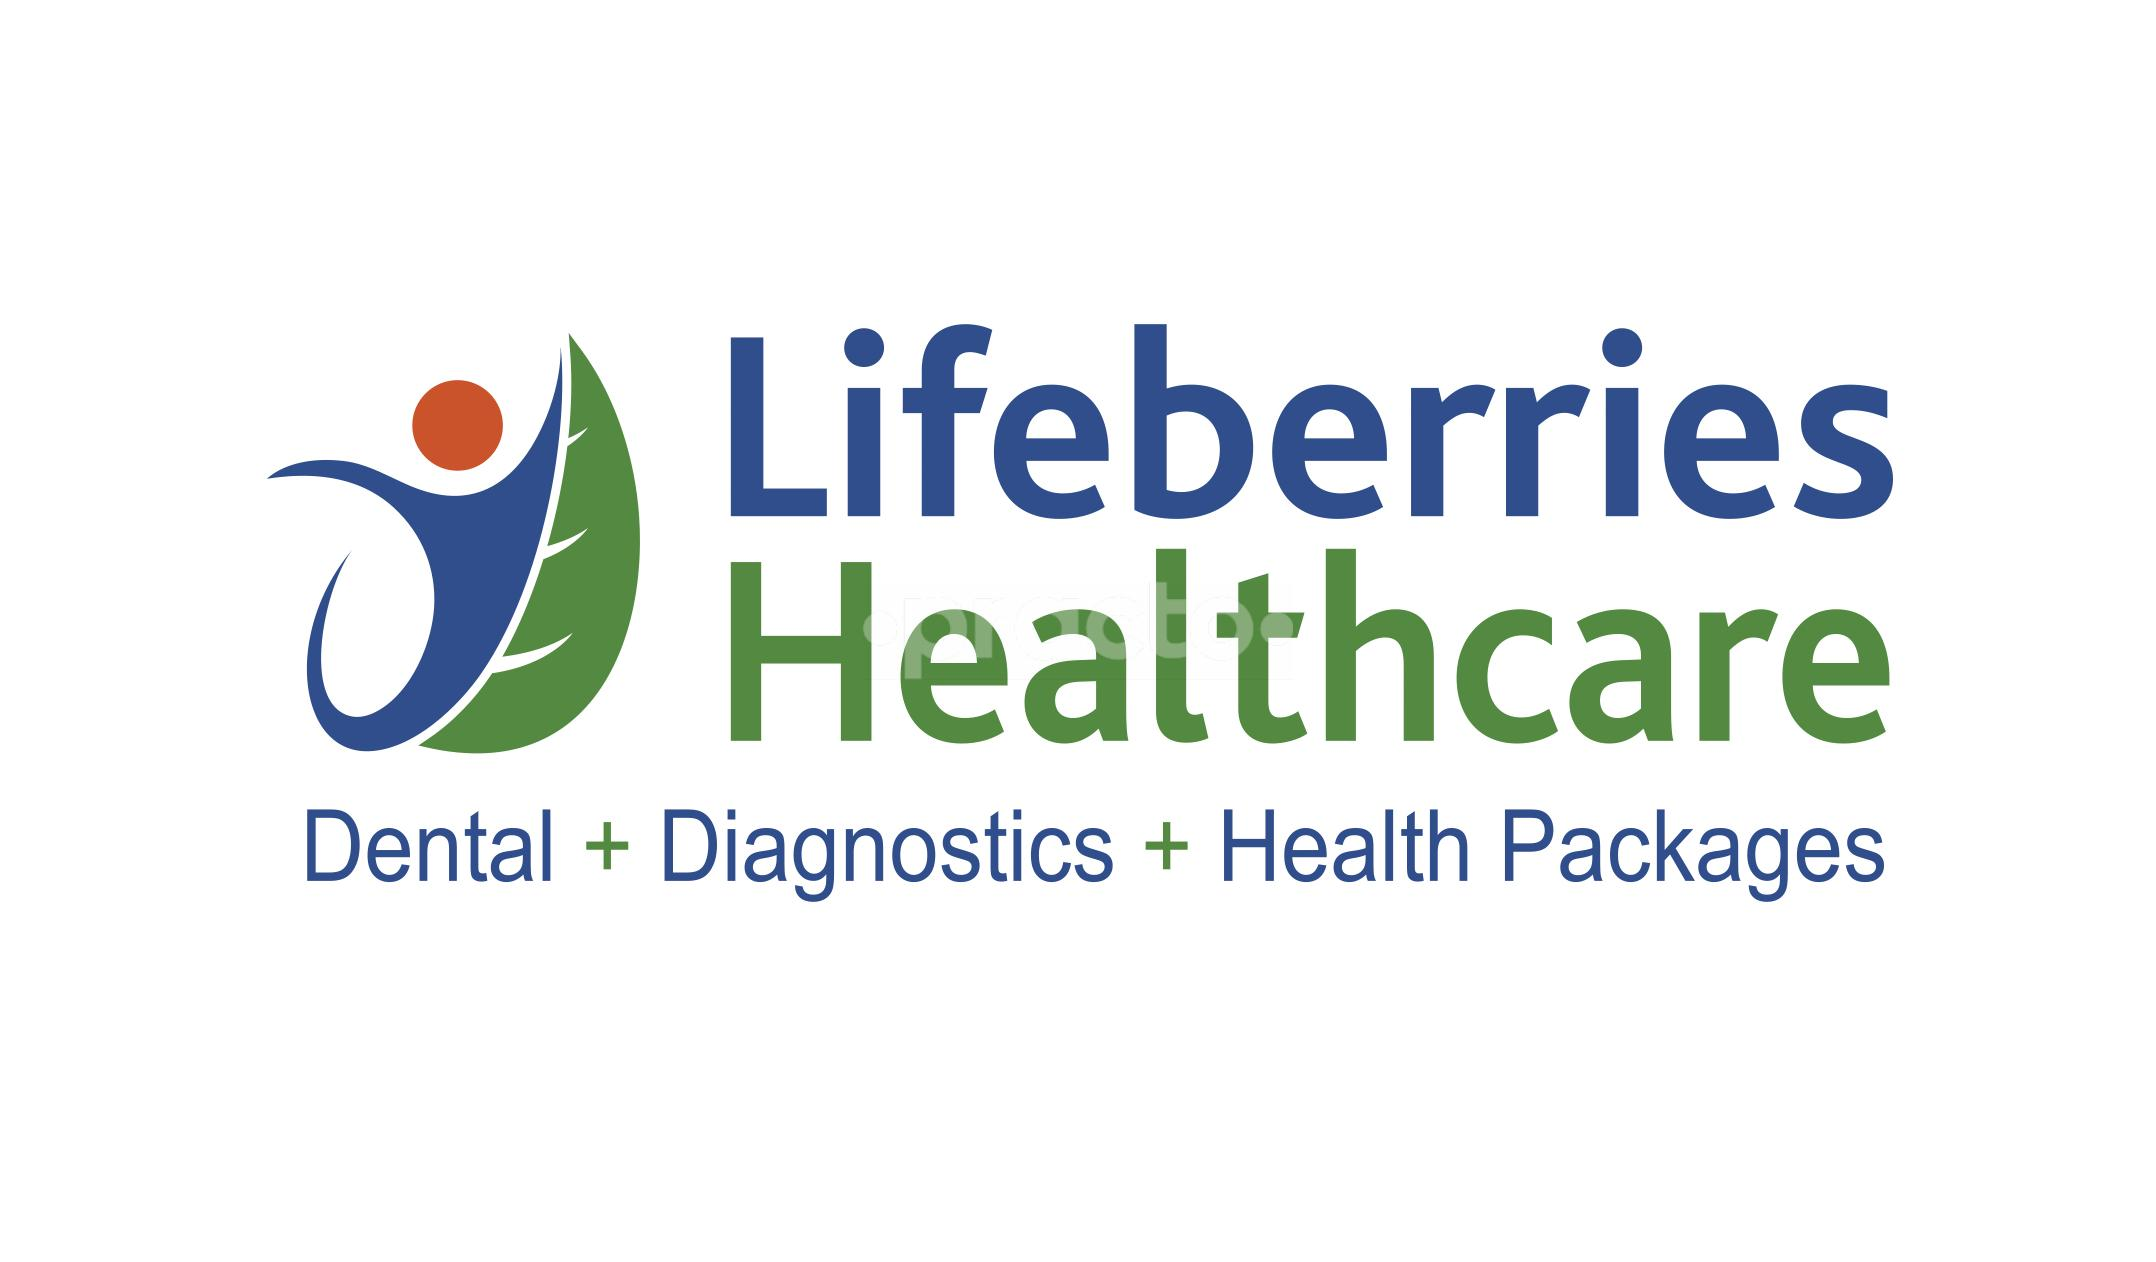 LifeBerries Healthcare Dental Clinic & Diagnostics